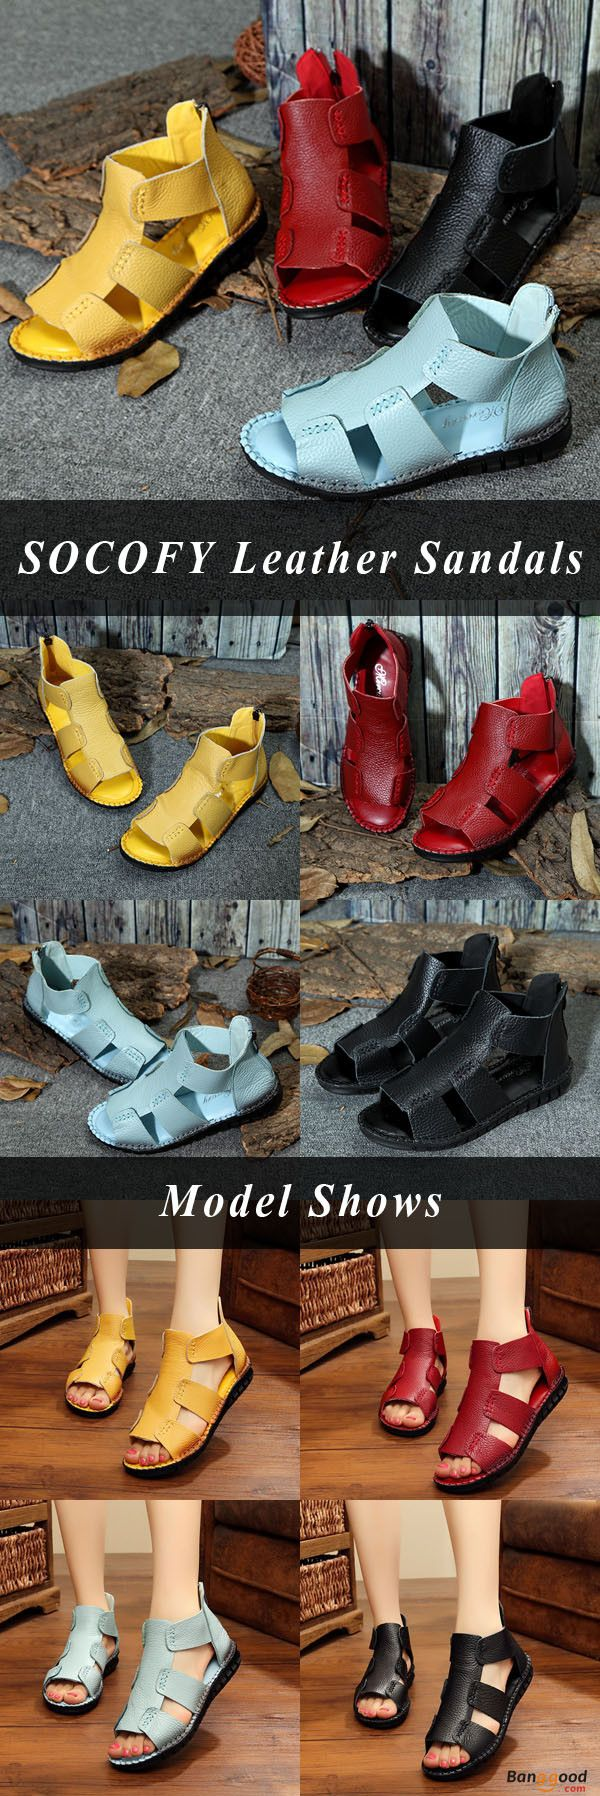 US$38.55+Free shipping. Size(US): 5~9. Summer Sandals, Women Flat Sandals, shoes flats, shoes sandals, Casual, Outdoor, Comfortable. Color: Black, Yellow, Blue. Heel Height: 2.5cm. Platform Height: 2.5cm. Upper Material: Genuine Leather. Outsole Material: http://bellanblue.com